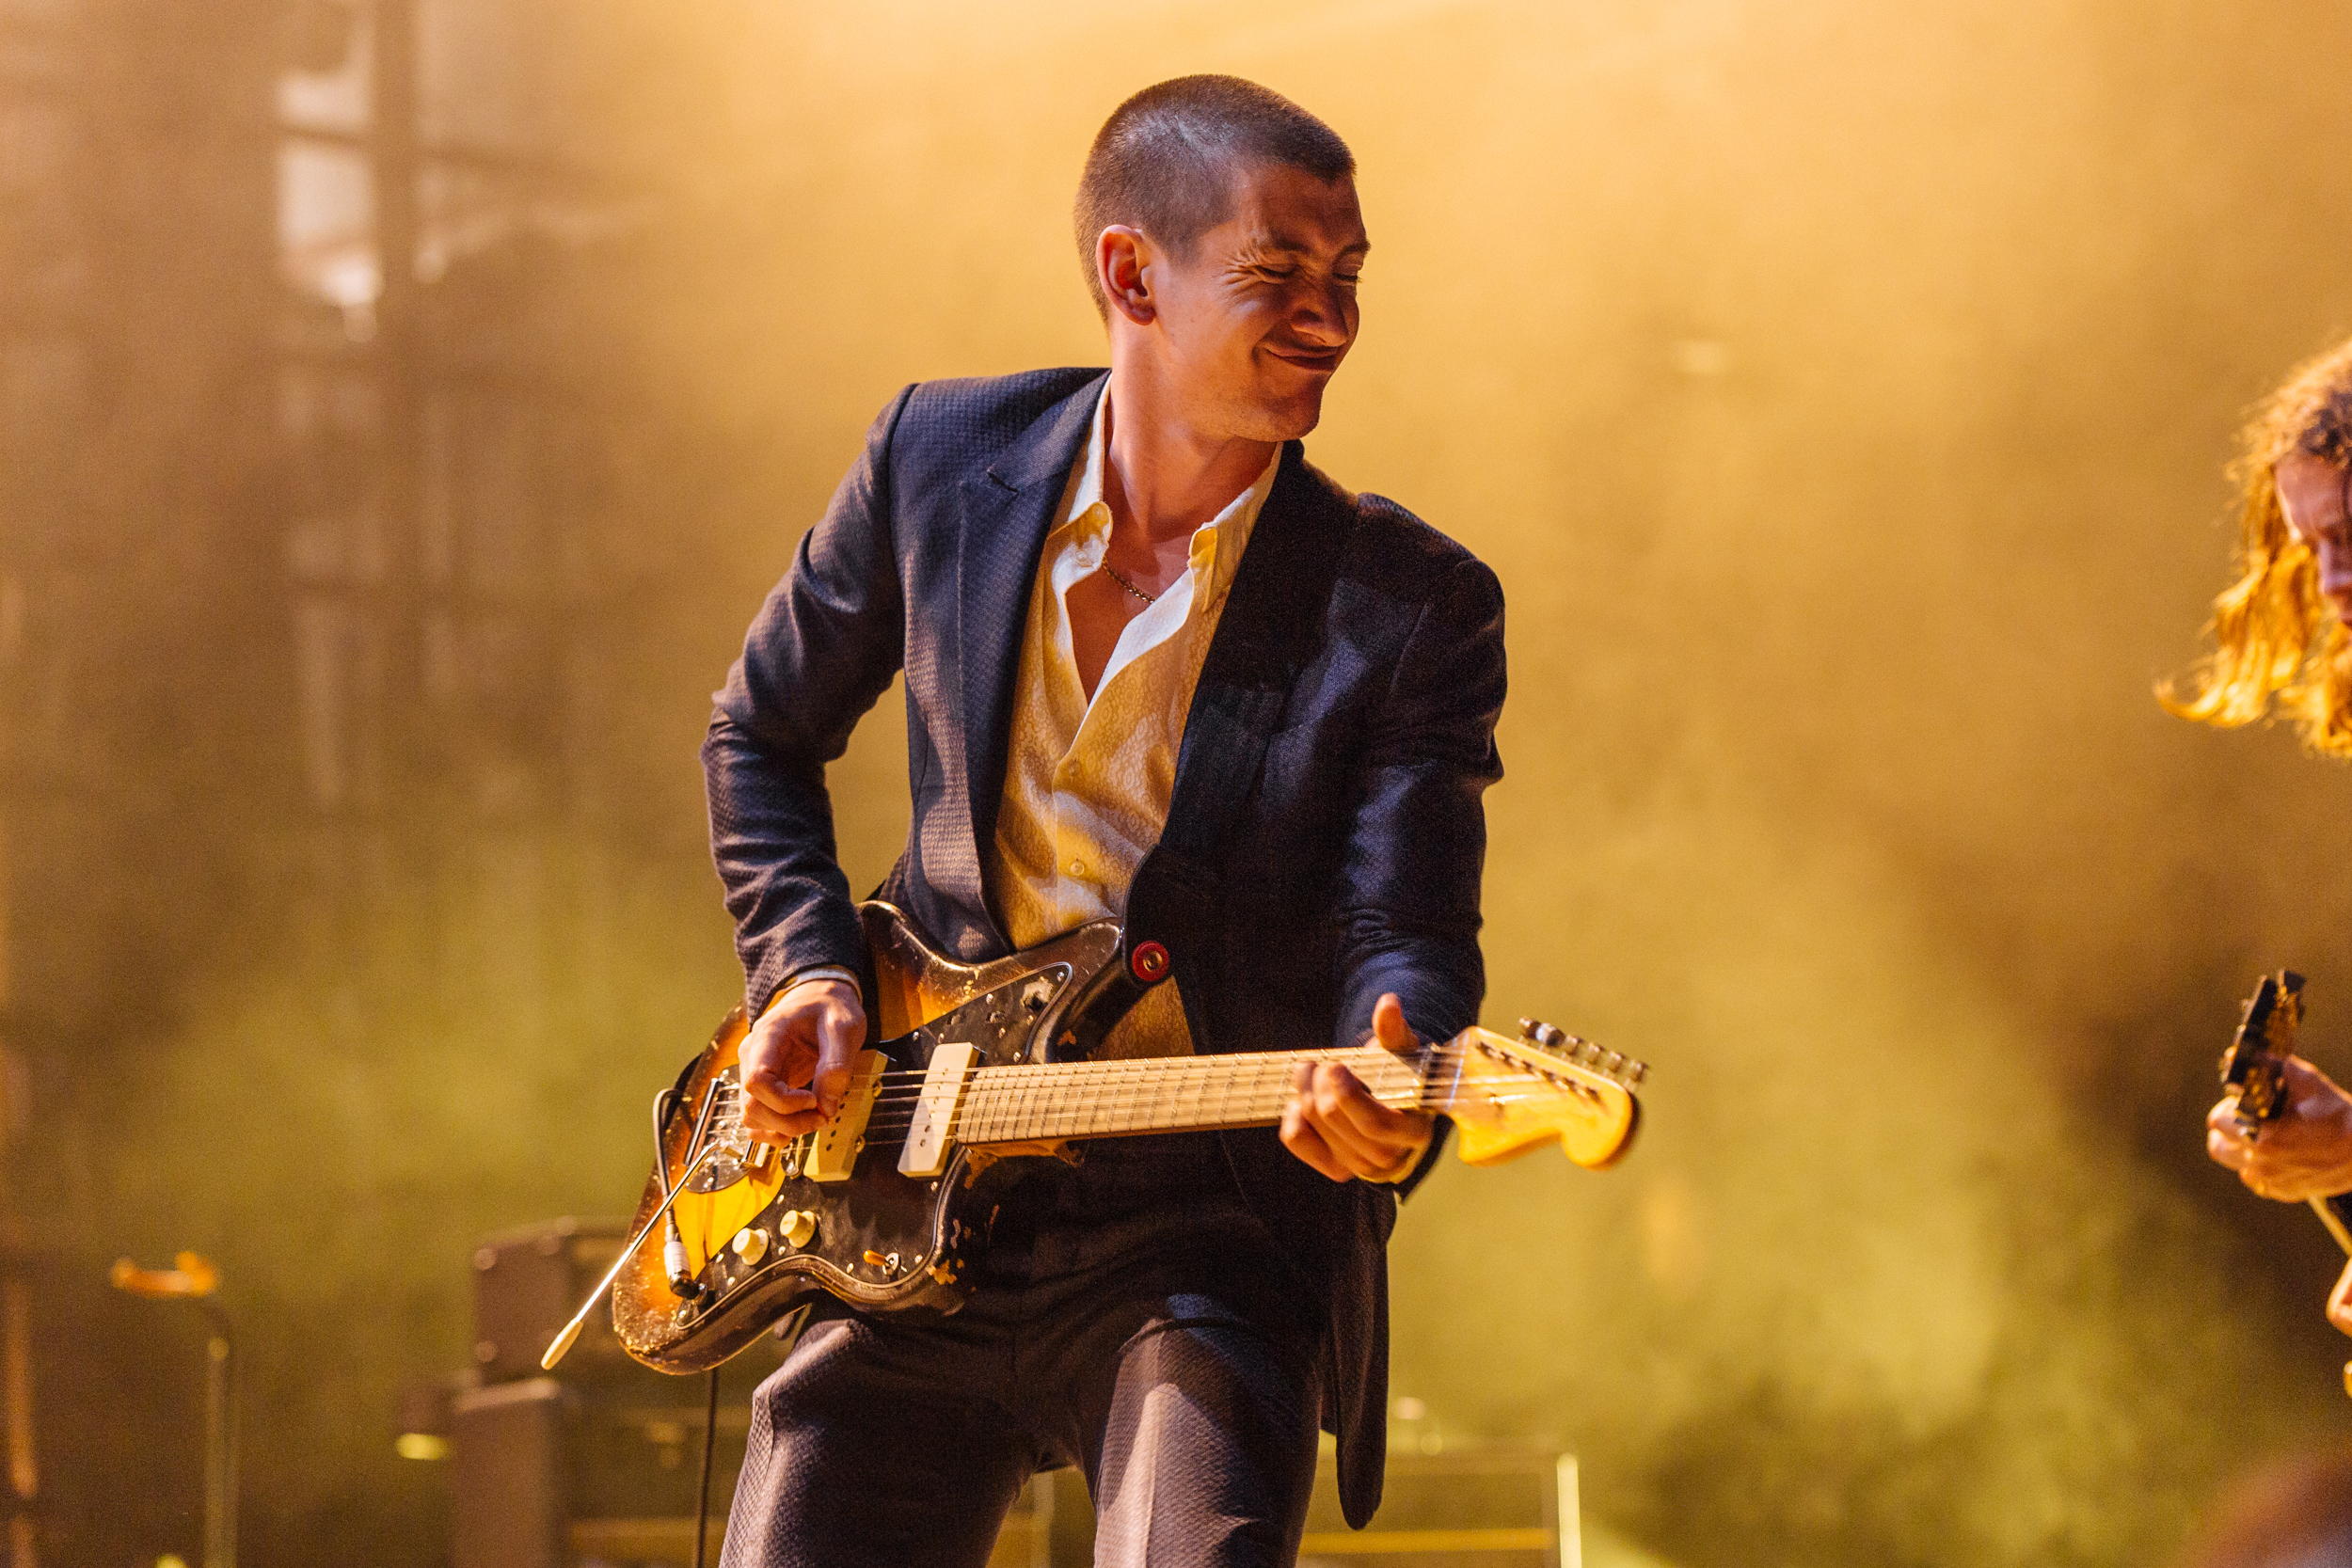 Alex Turner of Arctic Monkeys, possibly thinking about pizza. (Photo by Mauricio Castro /  @themauricio )